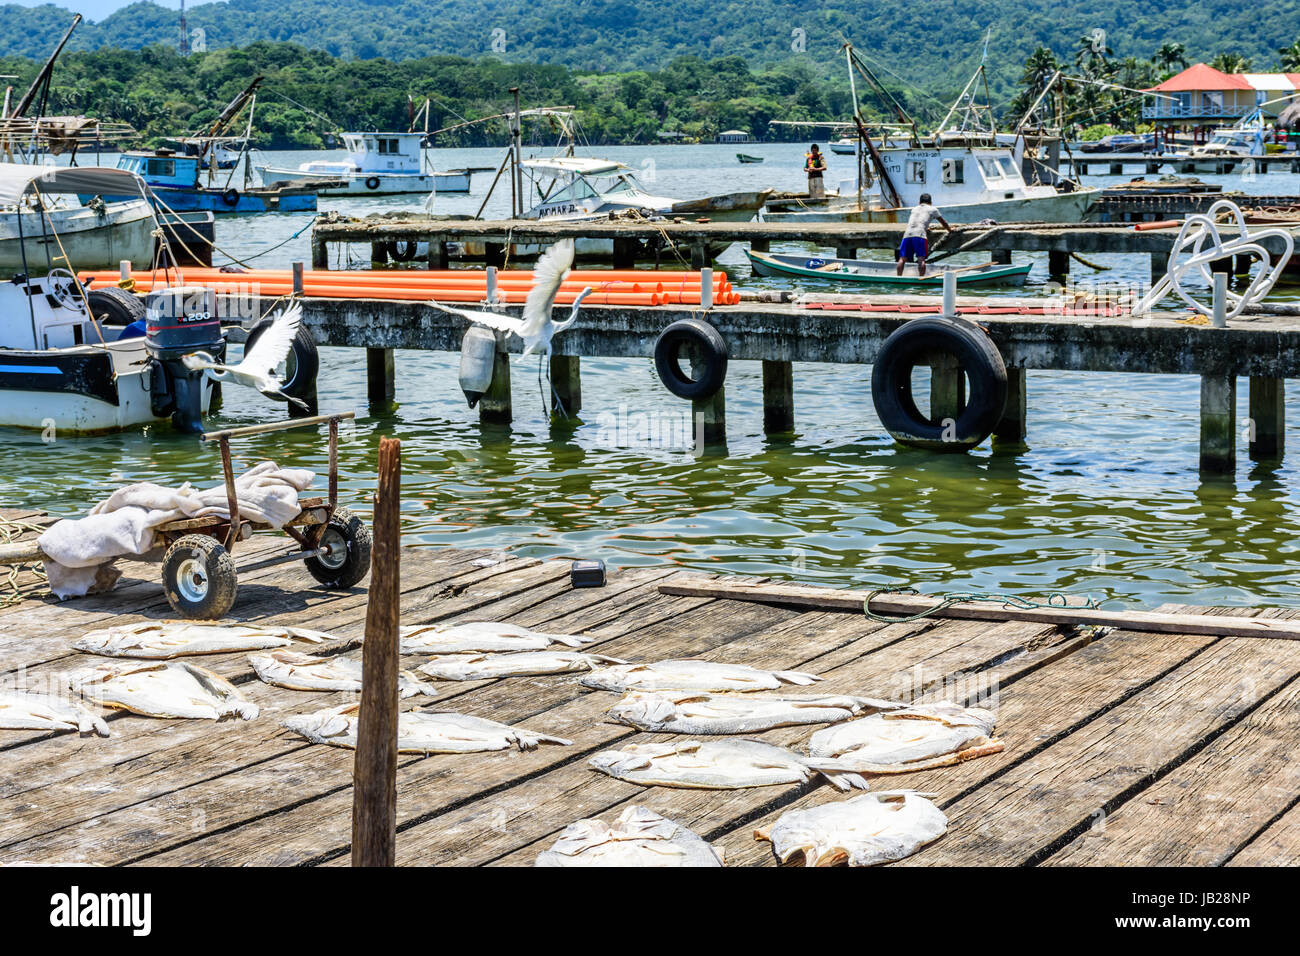 Livingston, Guatemala - August 31, 2016: Egrets fly over drying fish as fishermen work on boats in Caribbean town Stock Photo